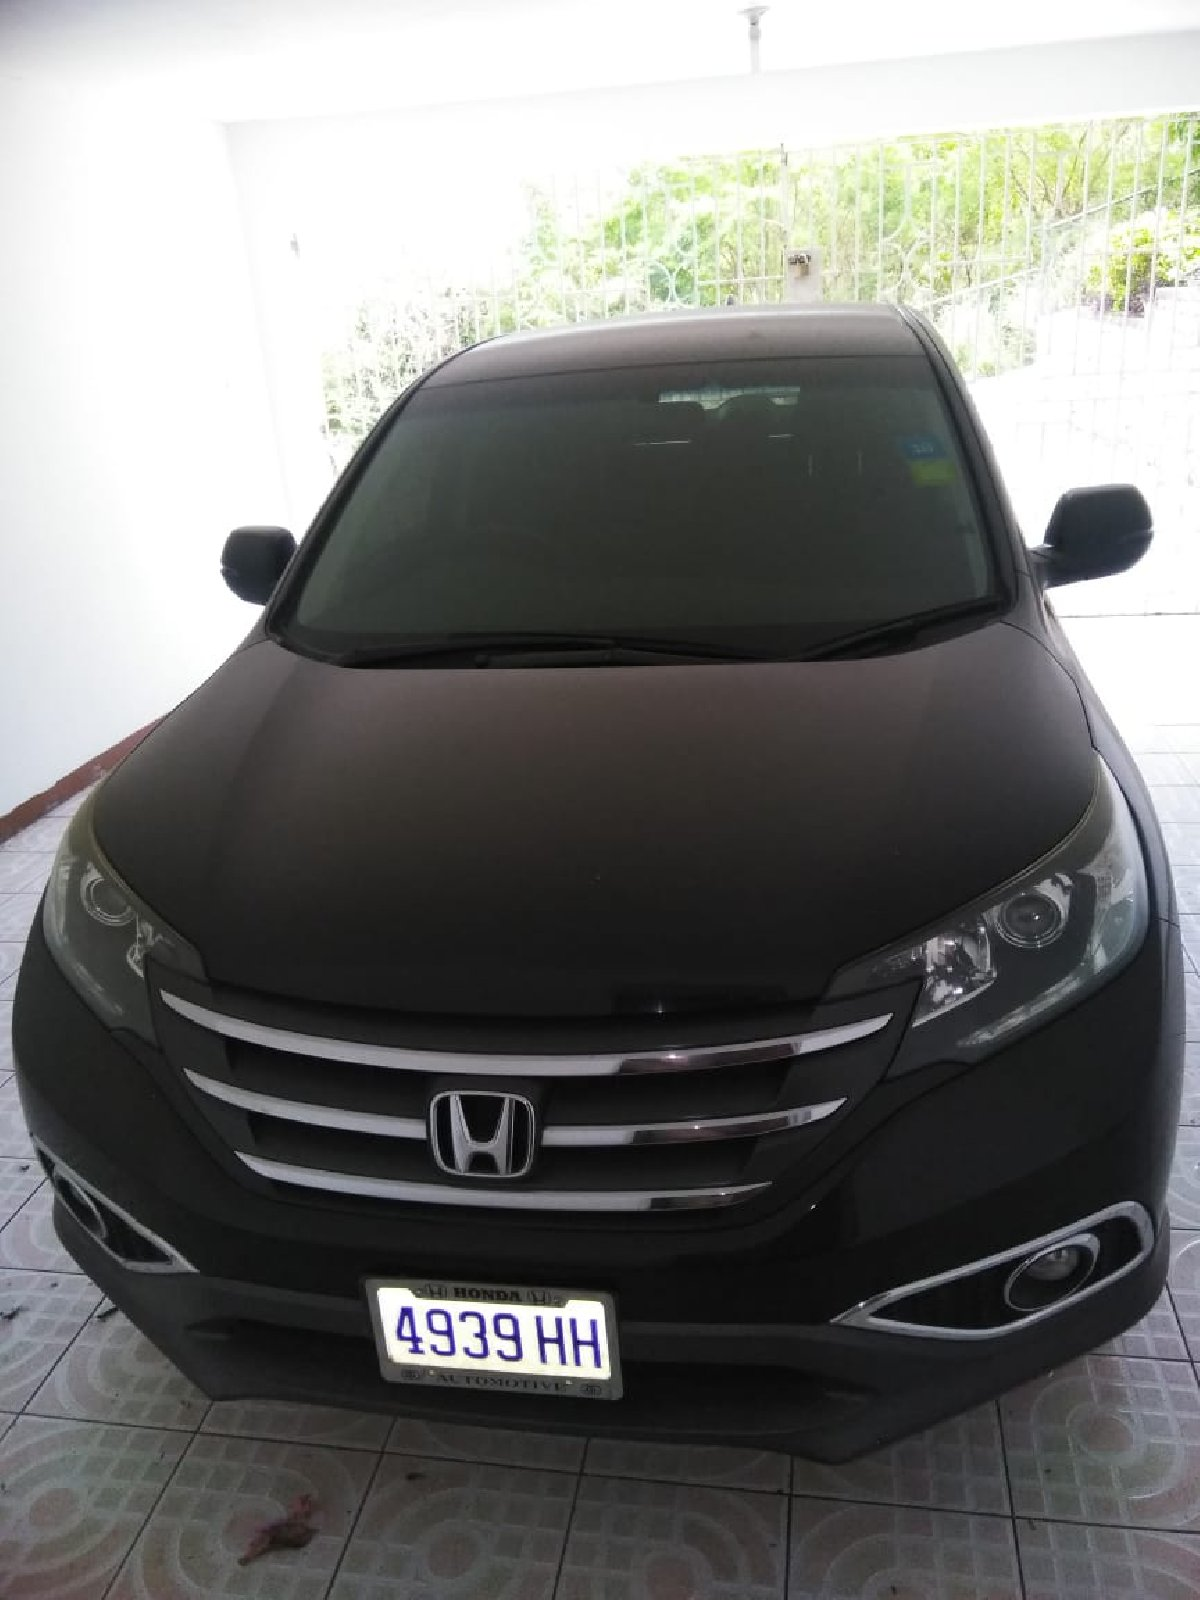 2012 honda crv for sale in belvedere kingston st andrew for 3 100 000 vans suvs. Black Bedroom Furniture Sets. Home Design Ideas